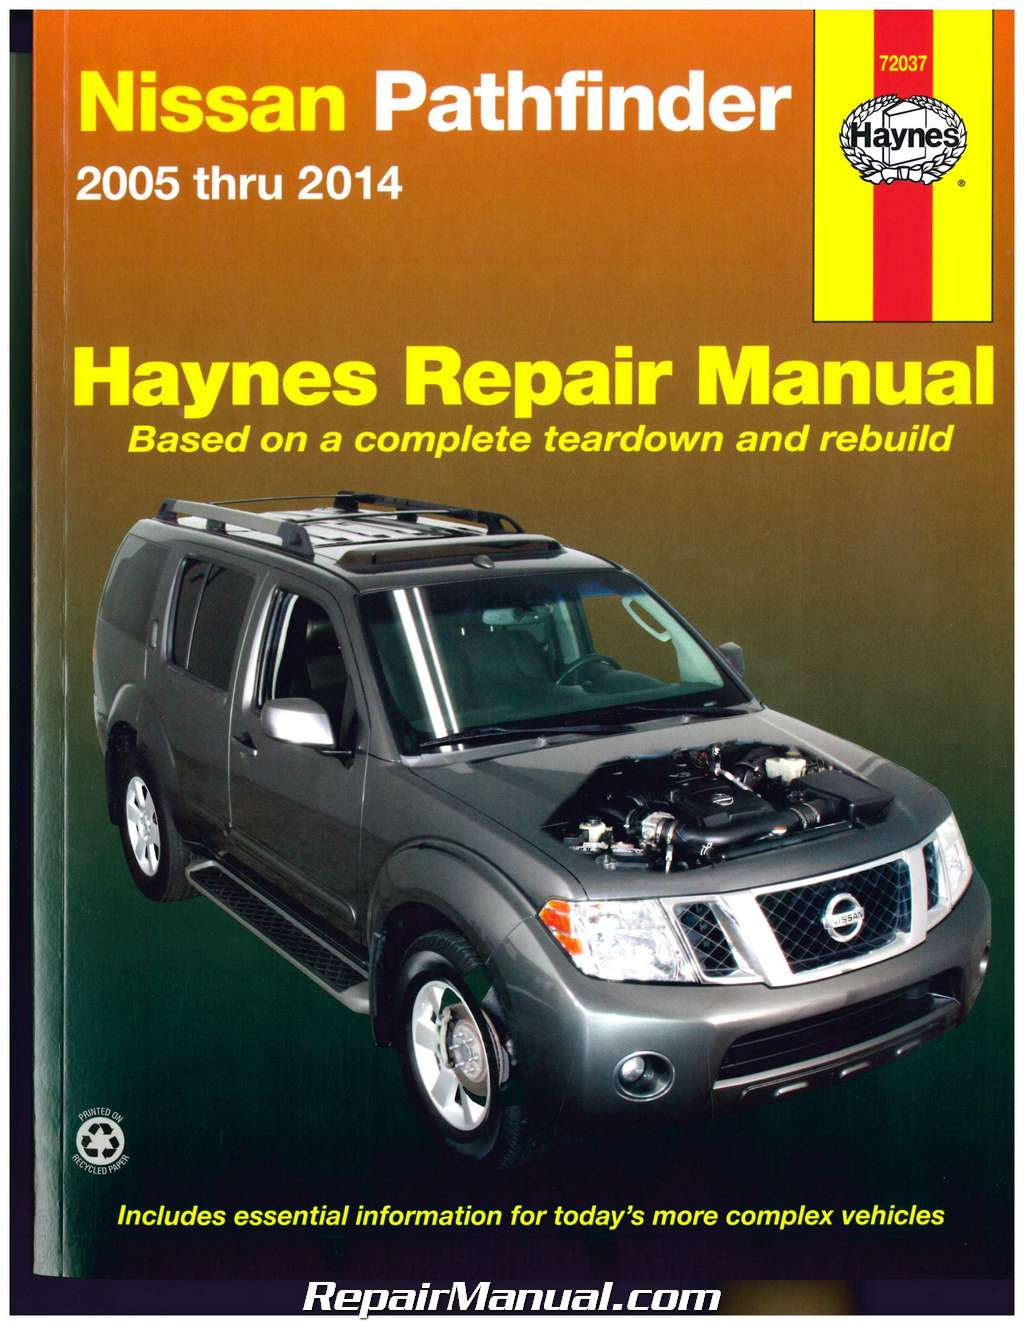 Nissan Pathfinder Auto Repair Manual